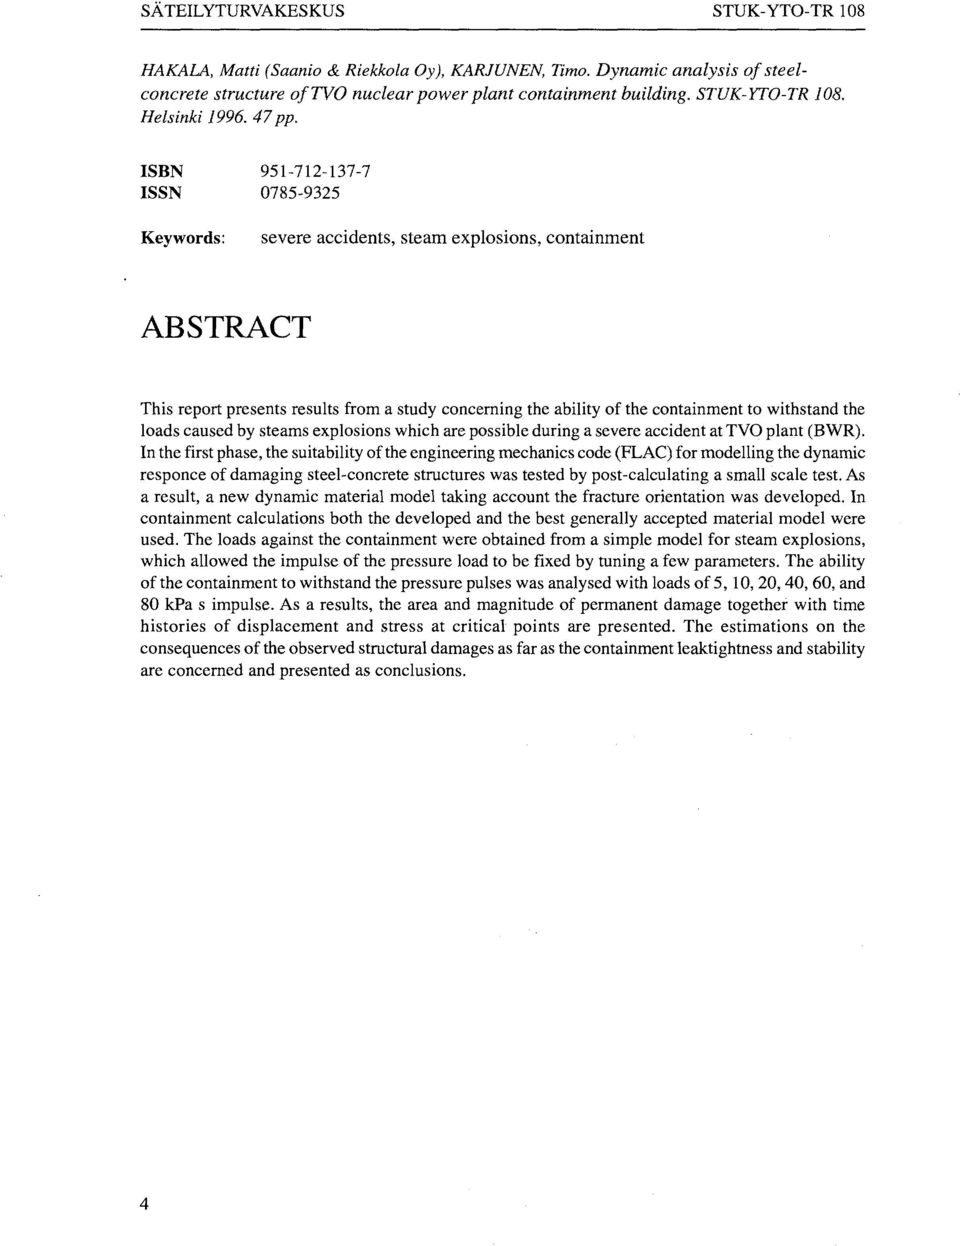 ISBN 951-712-137-7 ISSN 0785-9325 Keywords: severe accidents, steam explosions, containment ABSTRACT This report presents results from a study concerning the ability of the containment to withstand